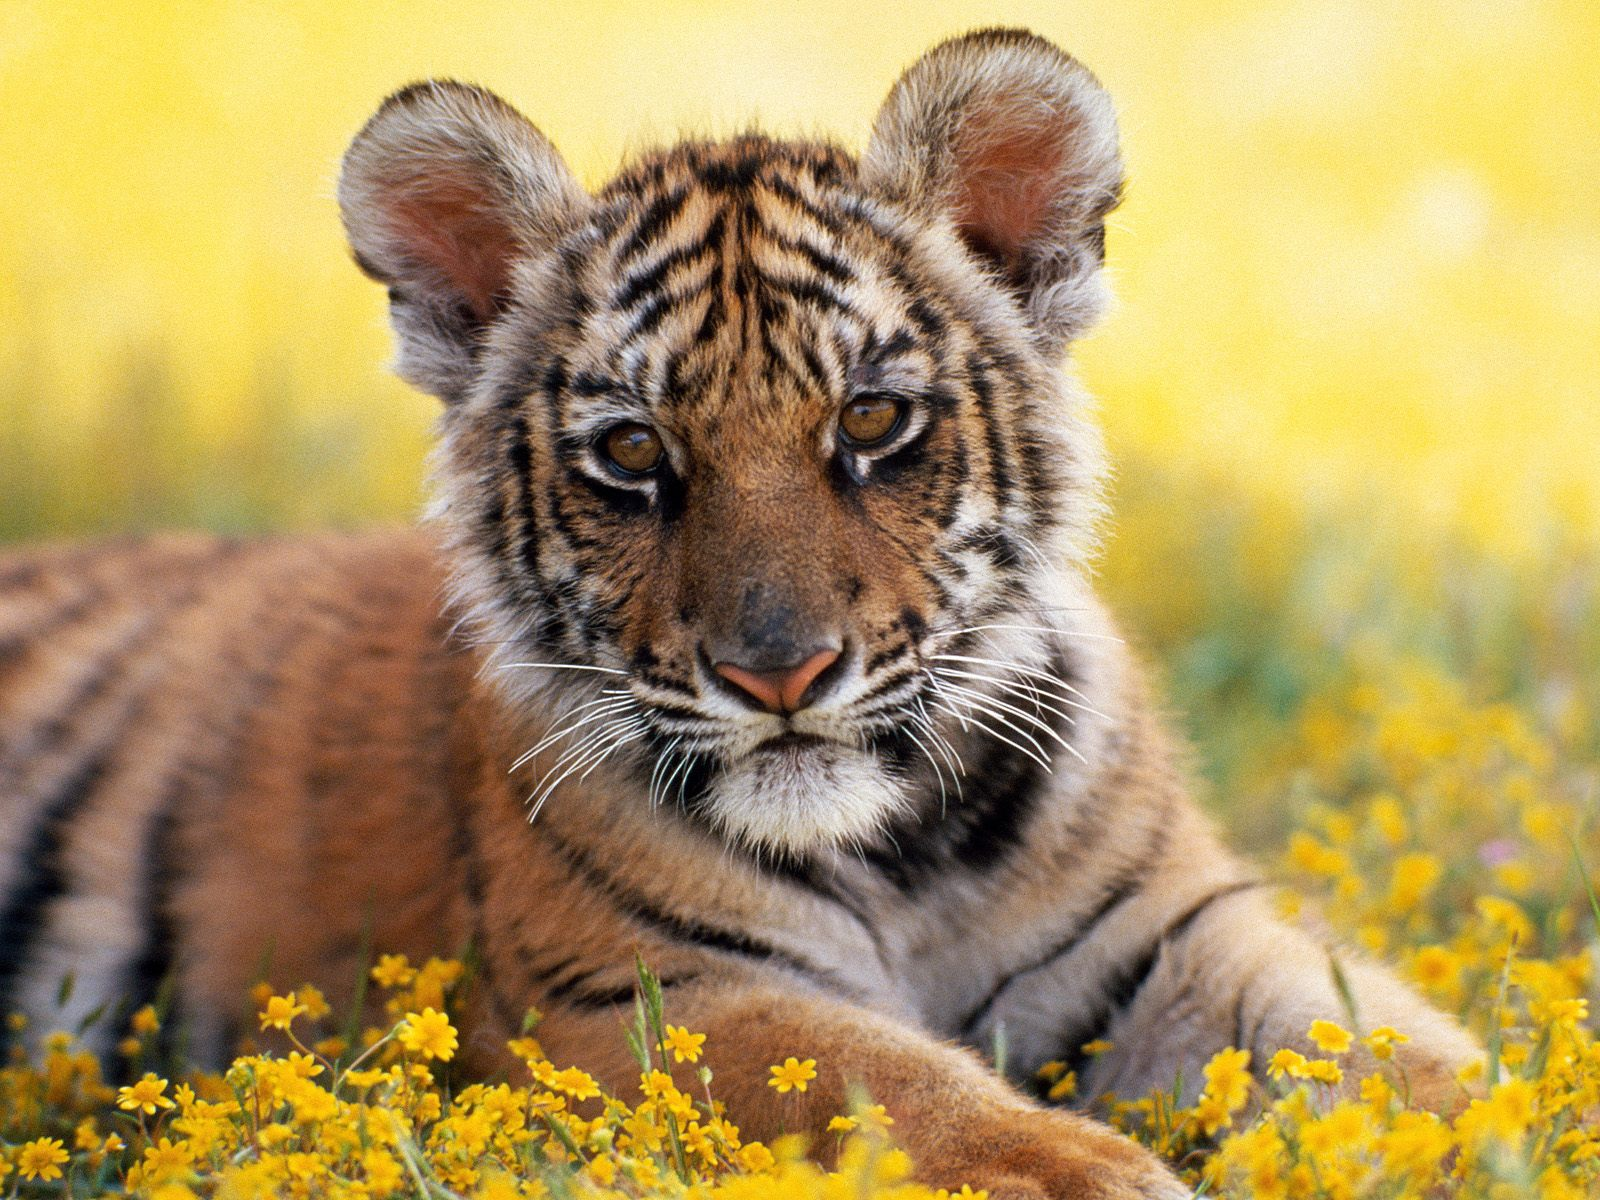 Best Animal Hd Wallpapers